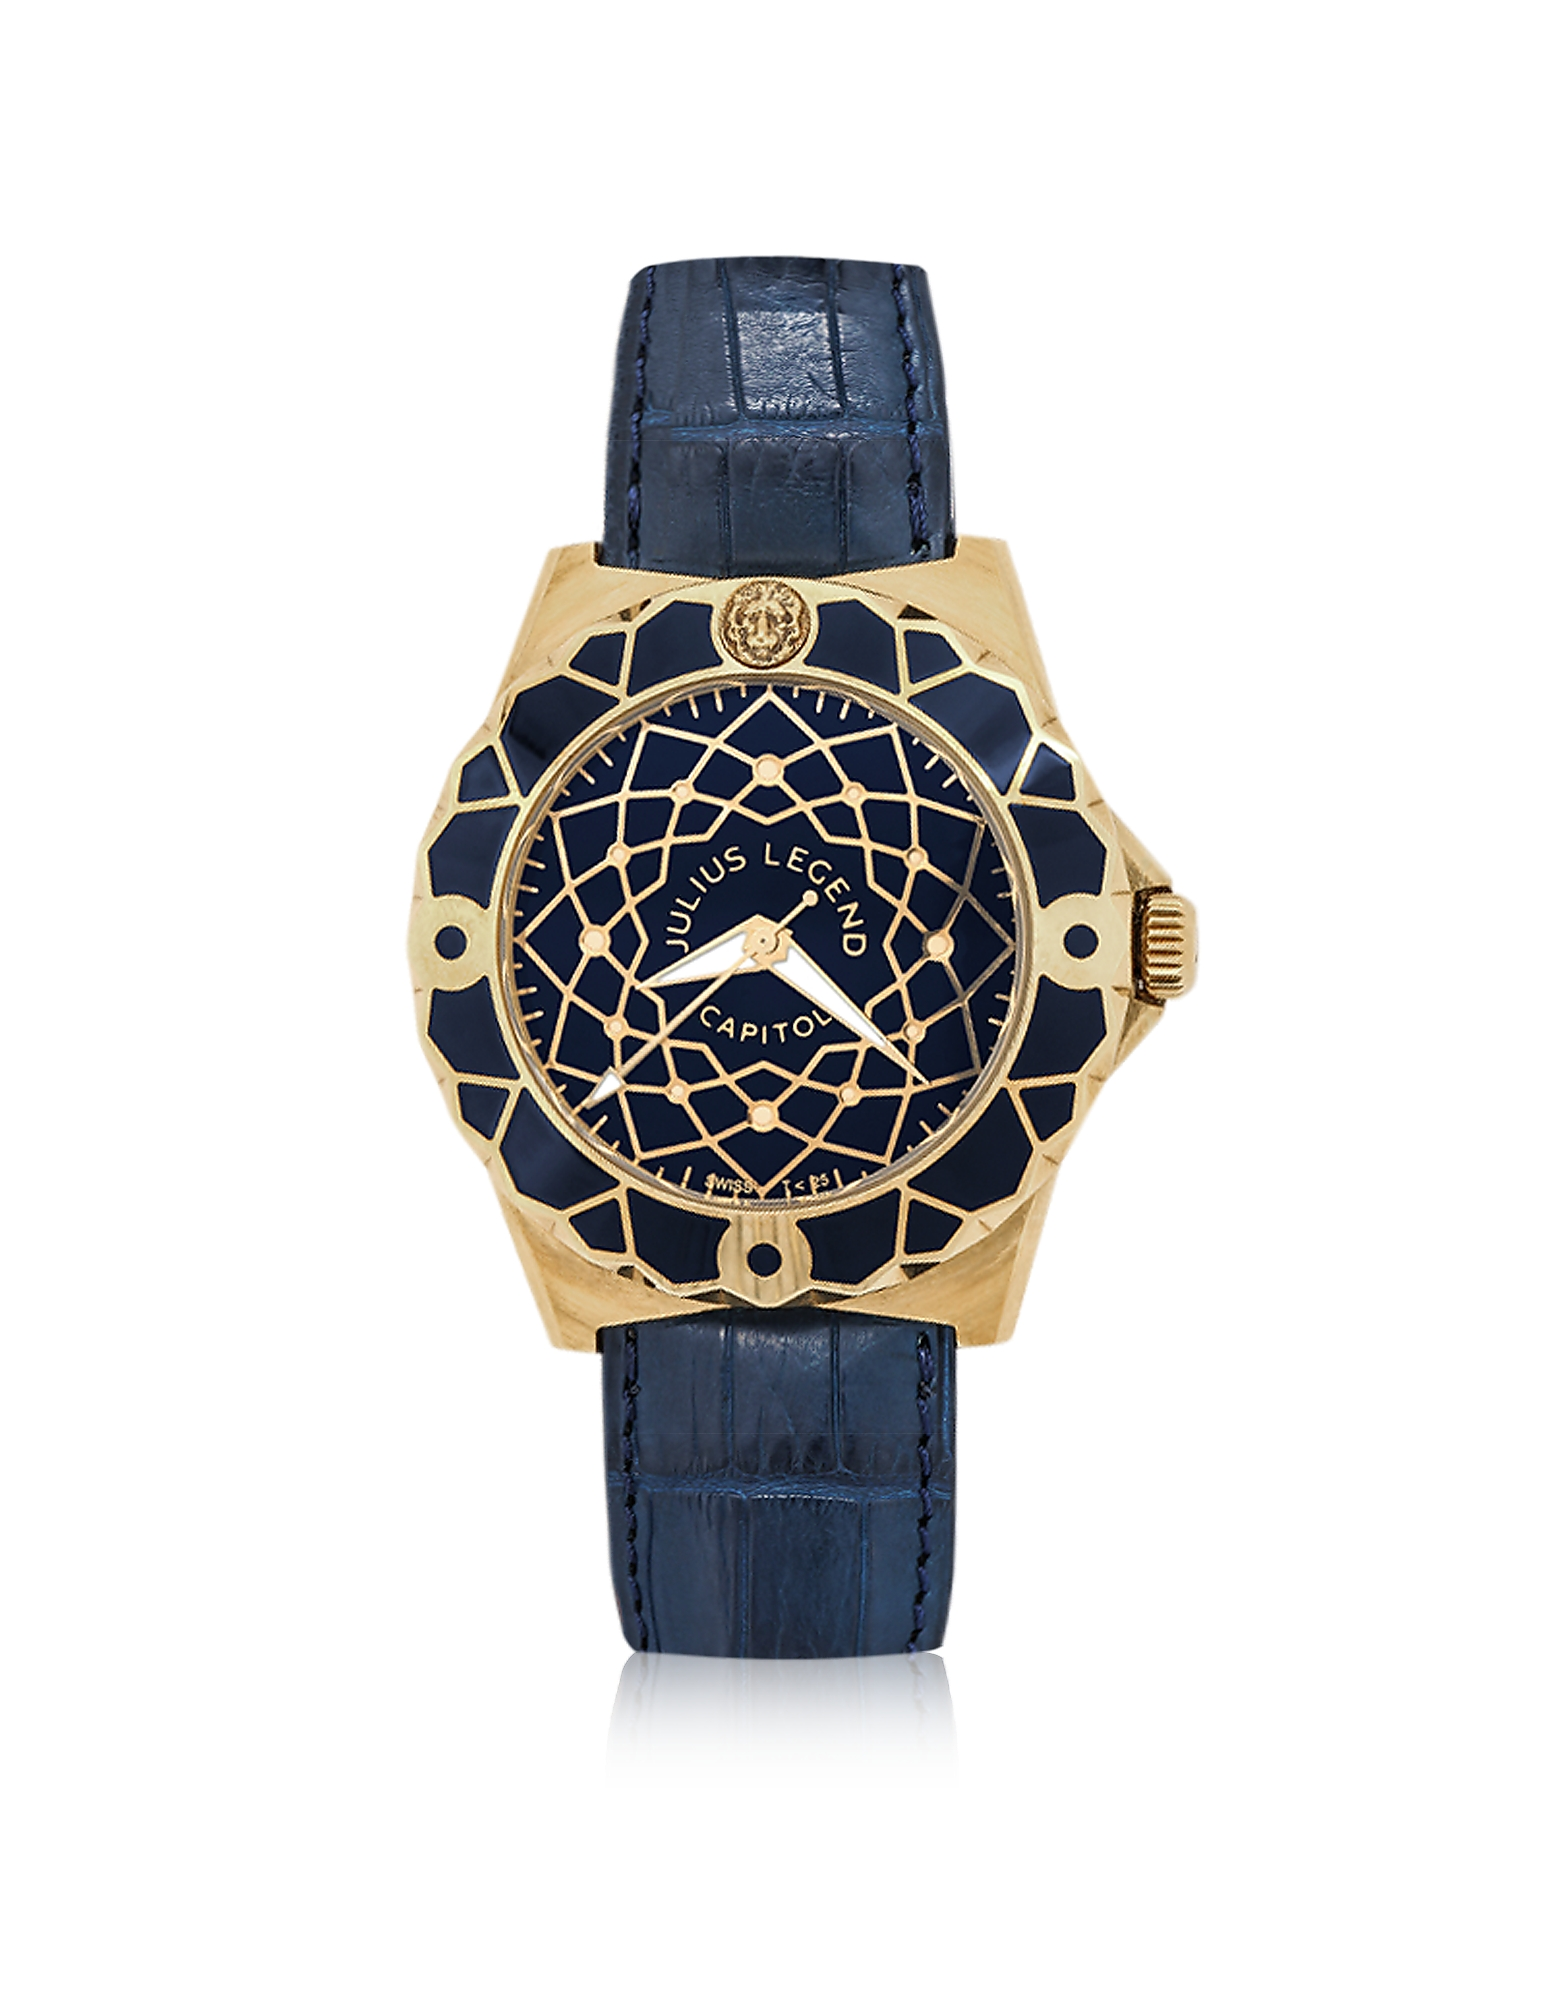 Capitol - 18K Gold & Blue Crocodile Leather Watch